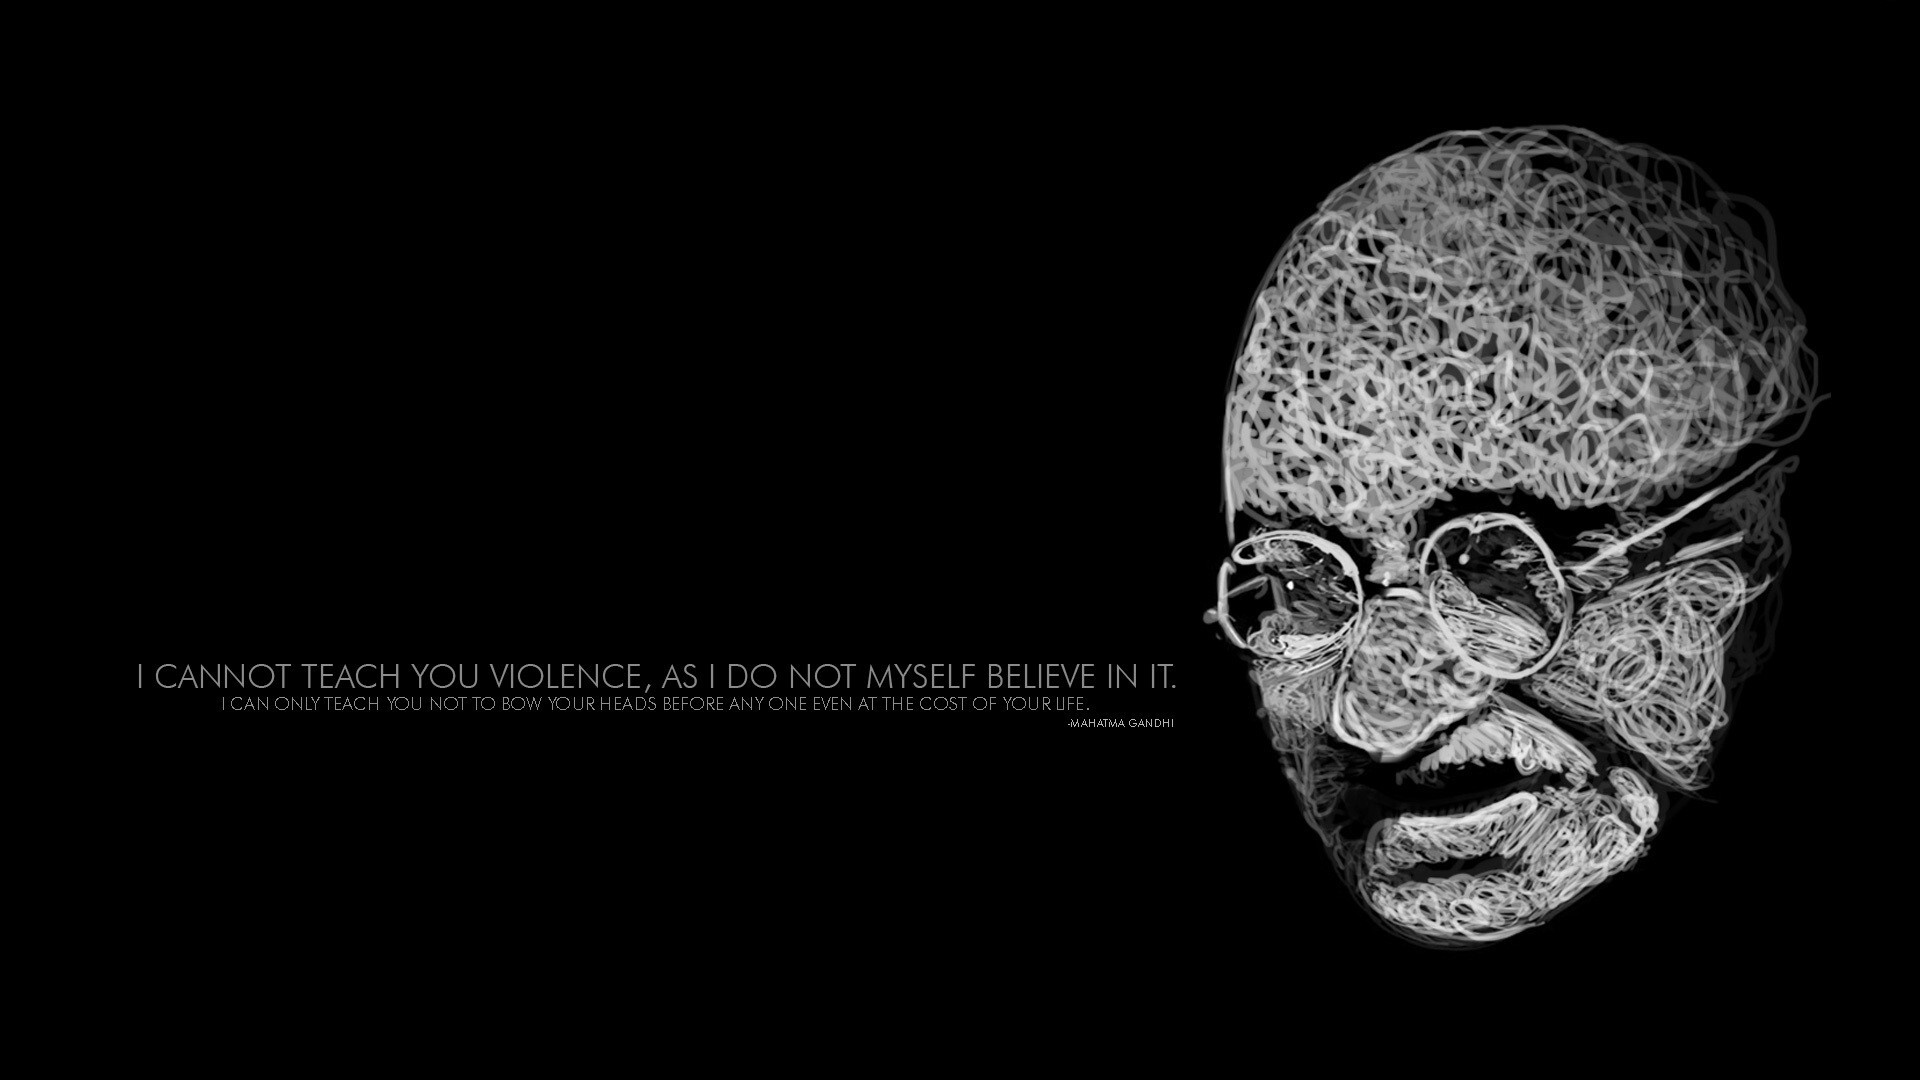 self believe mahatma gandhi famous quotes images | hd wallpapers